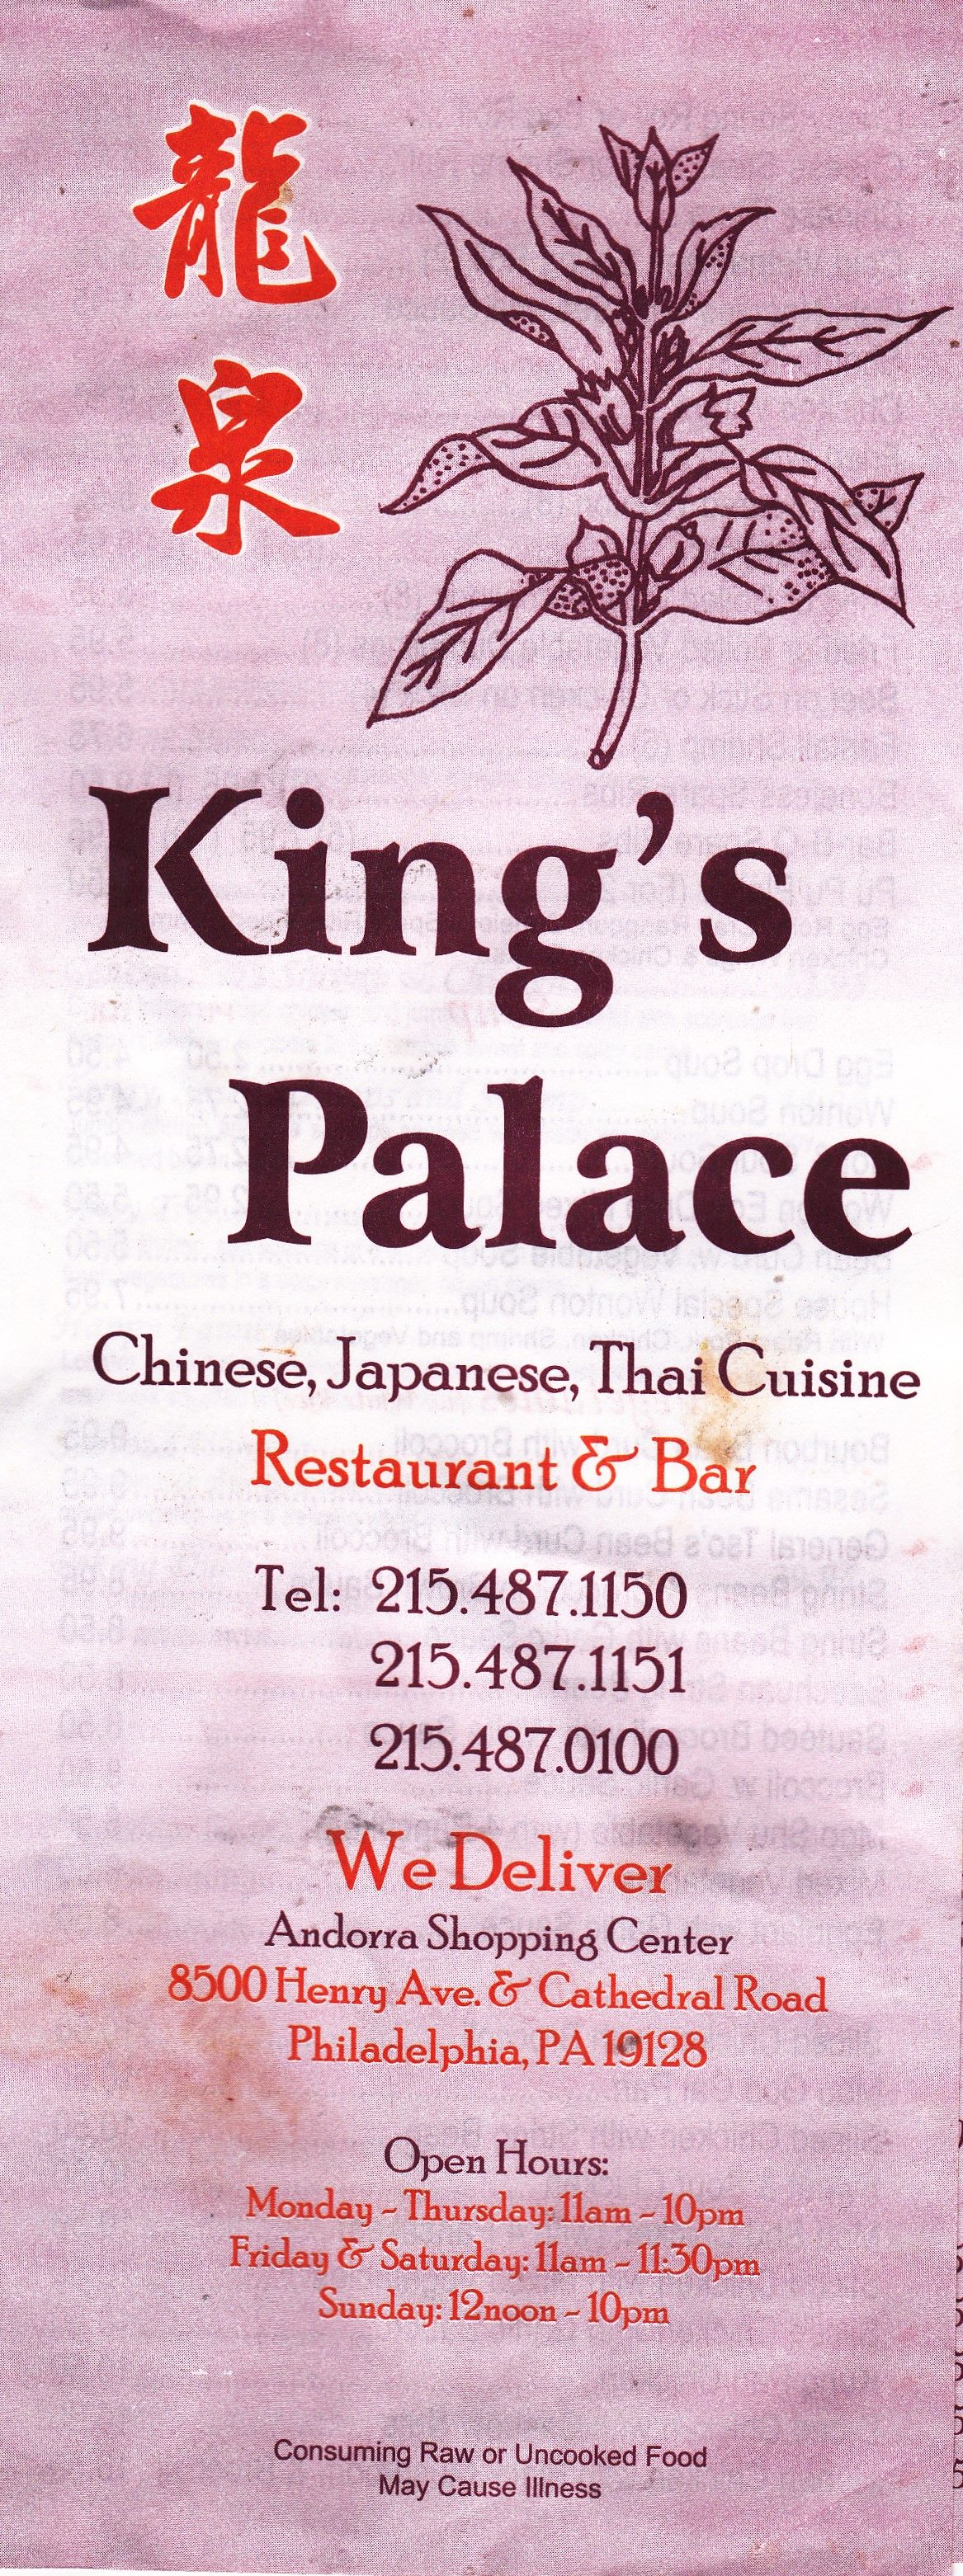 The Late King S Palace In The Andorra Shopping Center In The Roxoborough Section Of The City This Closed In 2 Chinese Restaurant Shopping Center Thai Cuisine